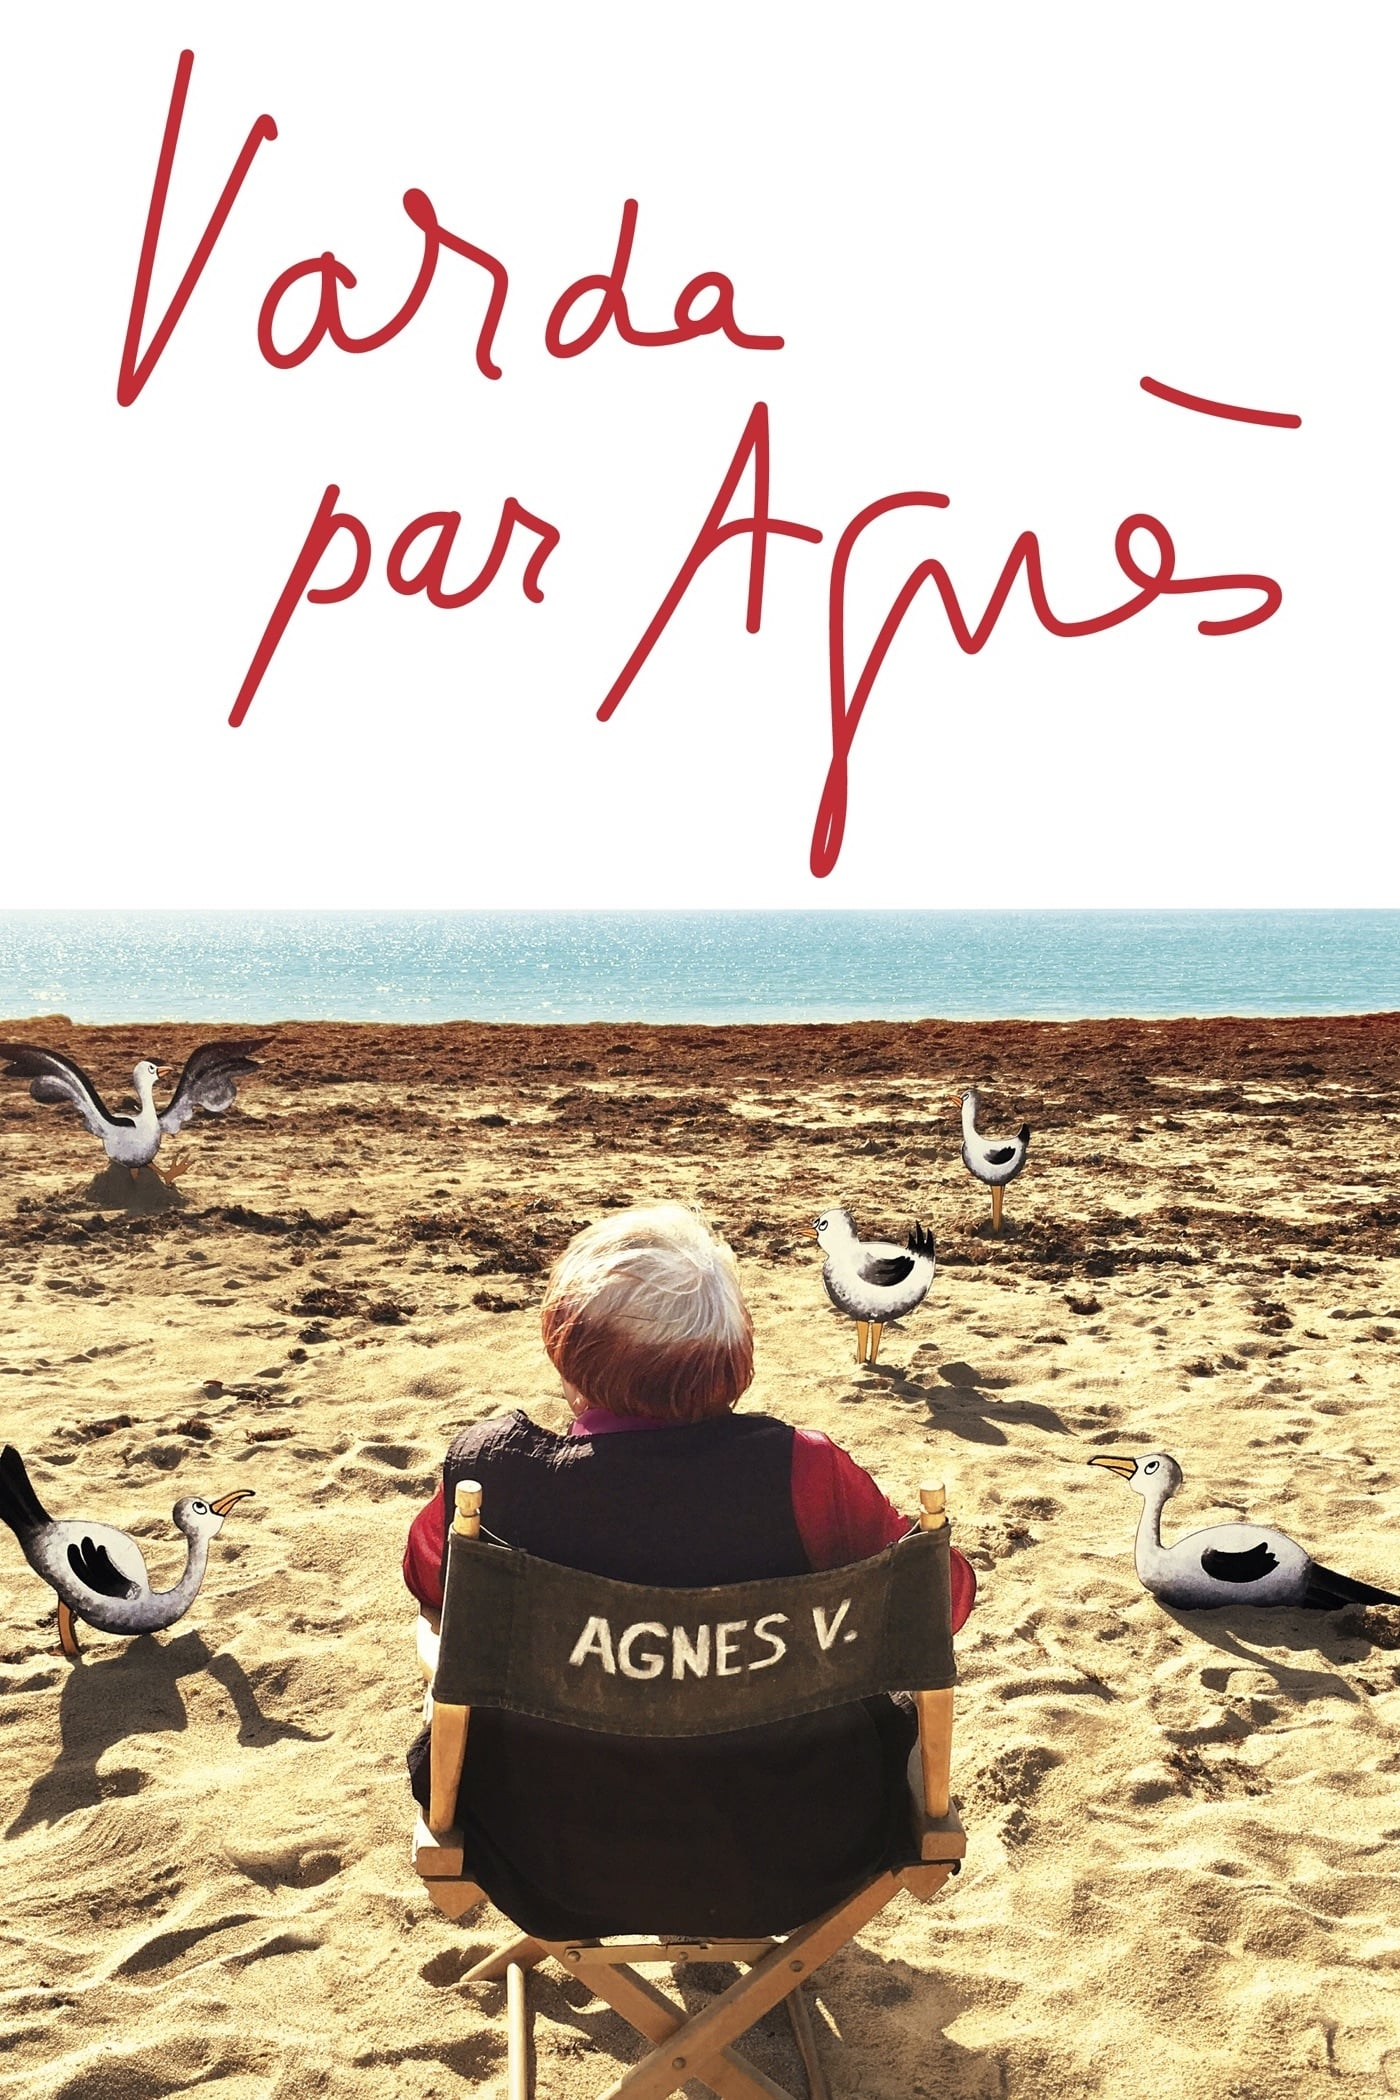 Varda by Agnès streaming sur zone telechargement